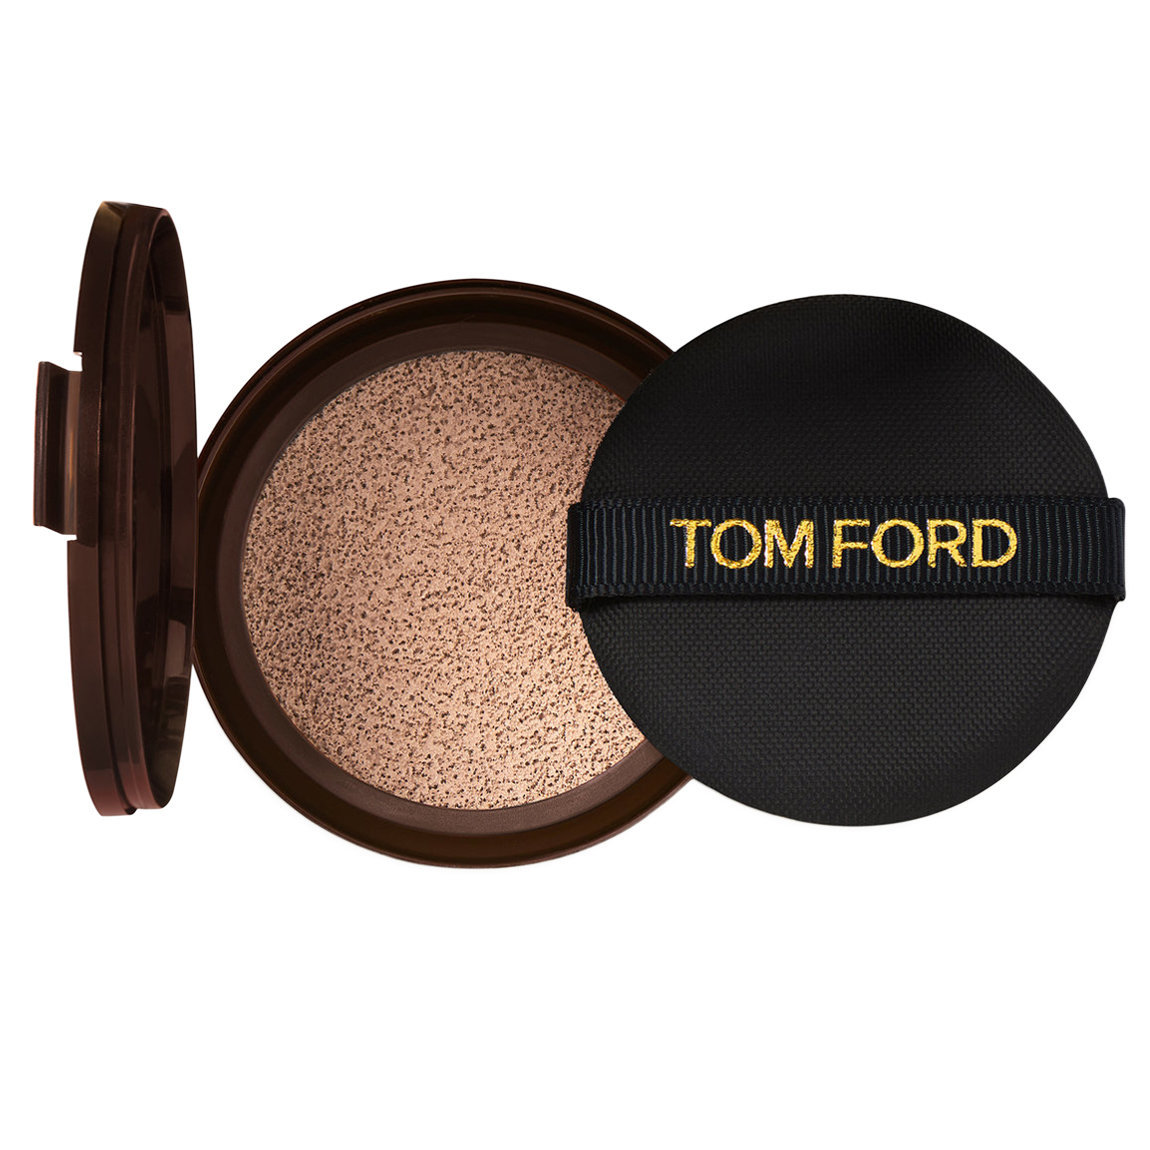 TOM FORD Traceless Touch Foundation Cushion Compact SPF 45 Refill 0.5 Porcelain alternative view 1 - product swatch.